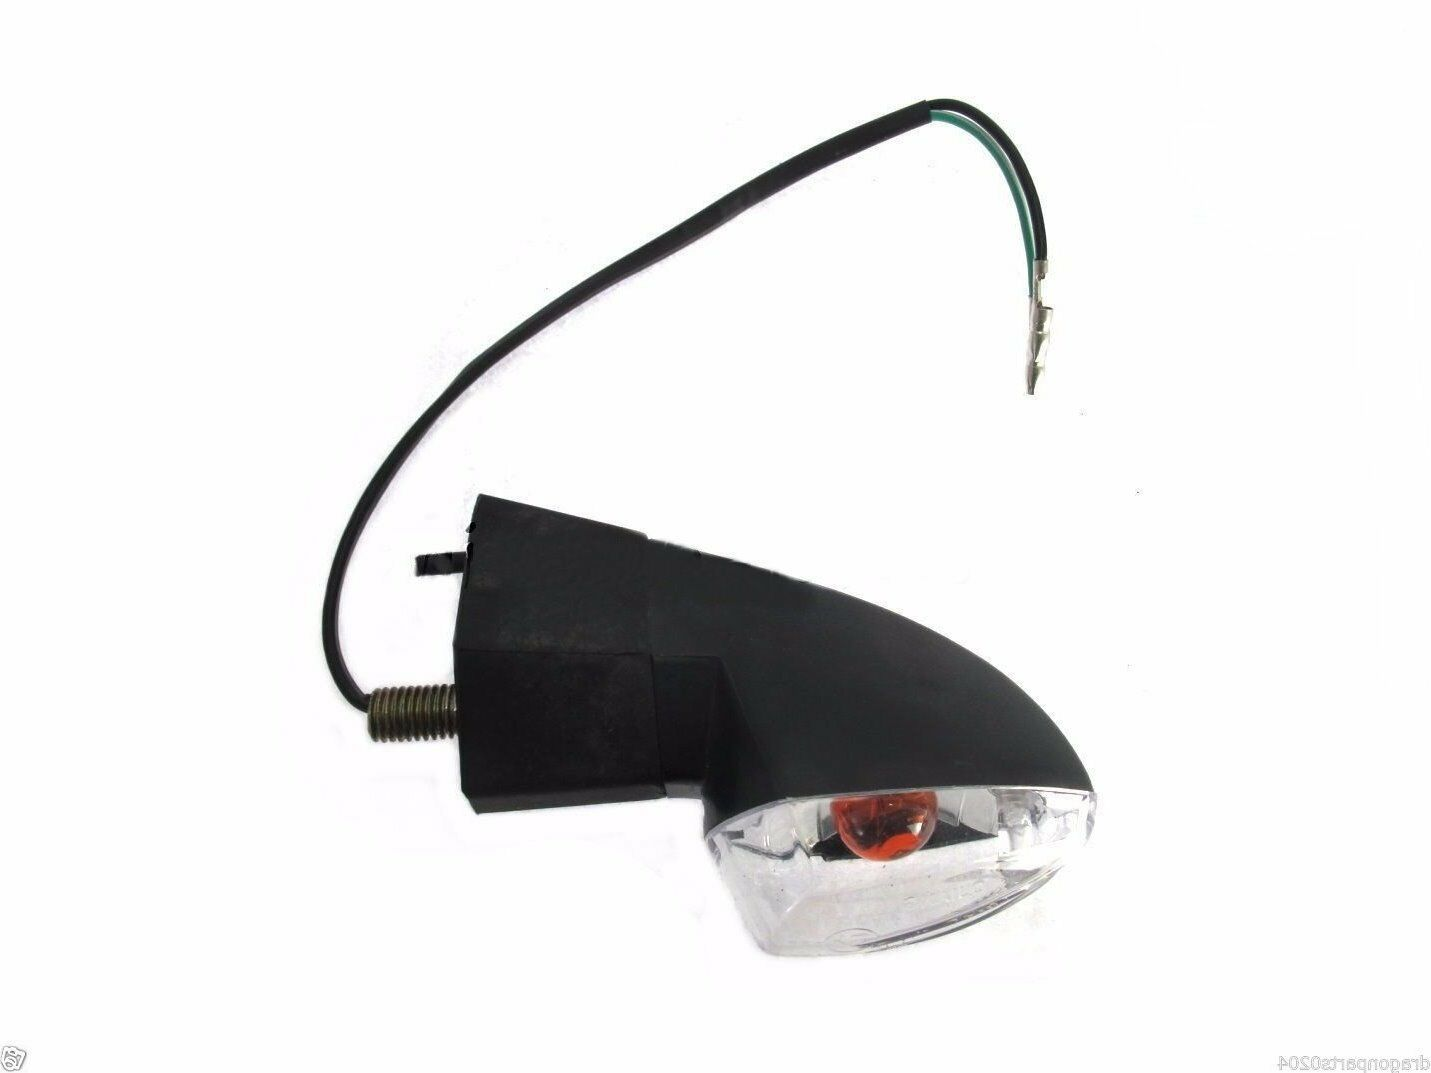 INDICATOR Left Front or Right Rear for KEEWAY RKV 125